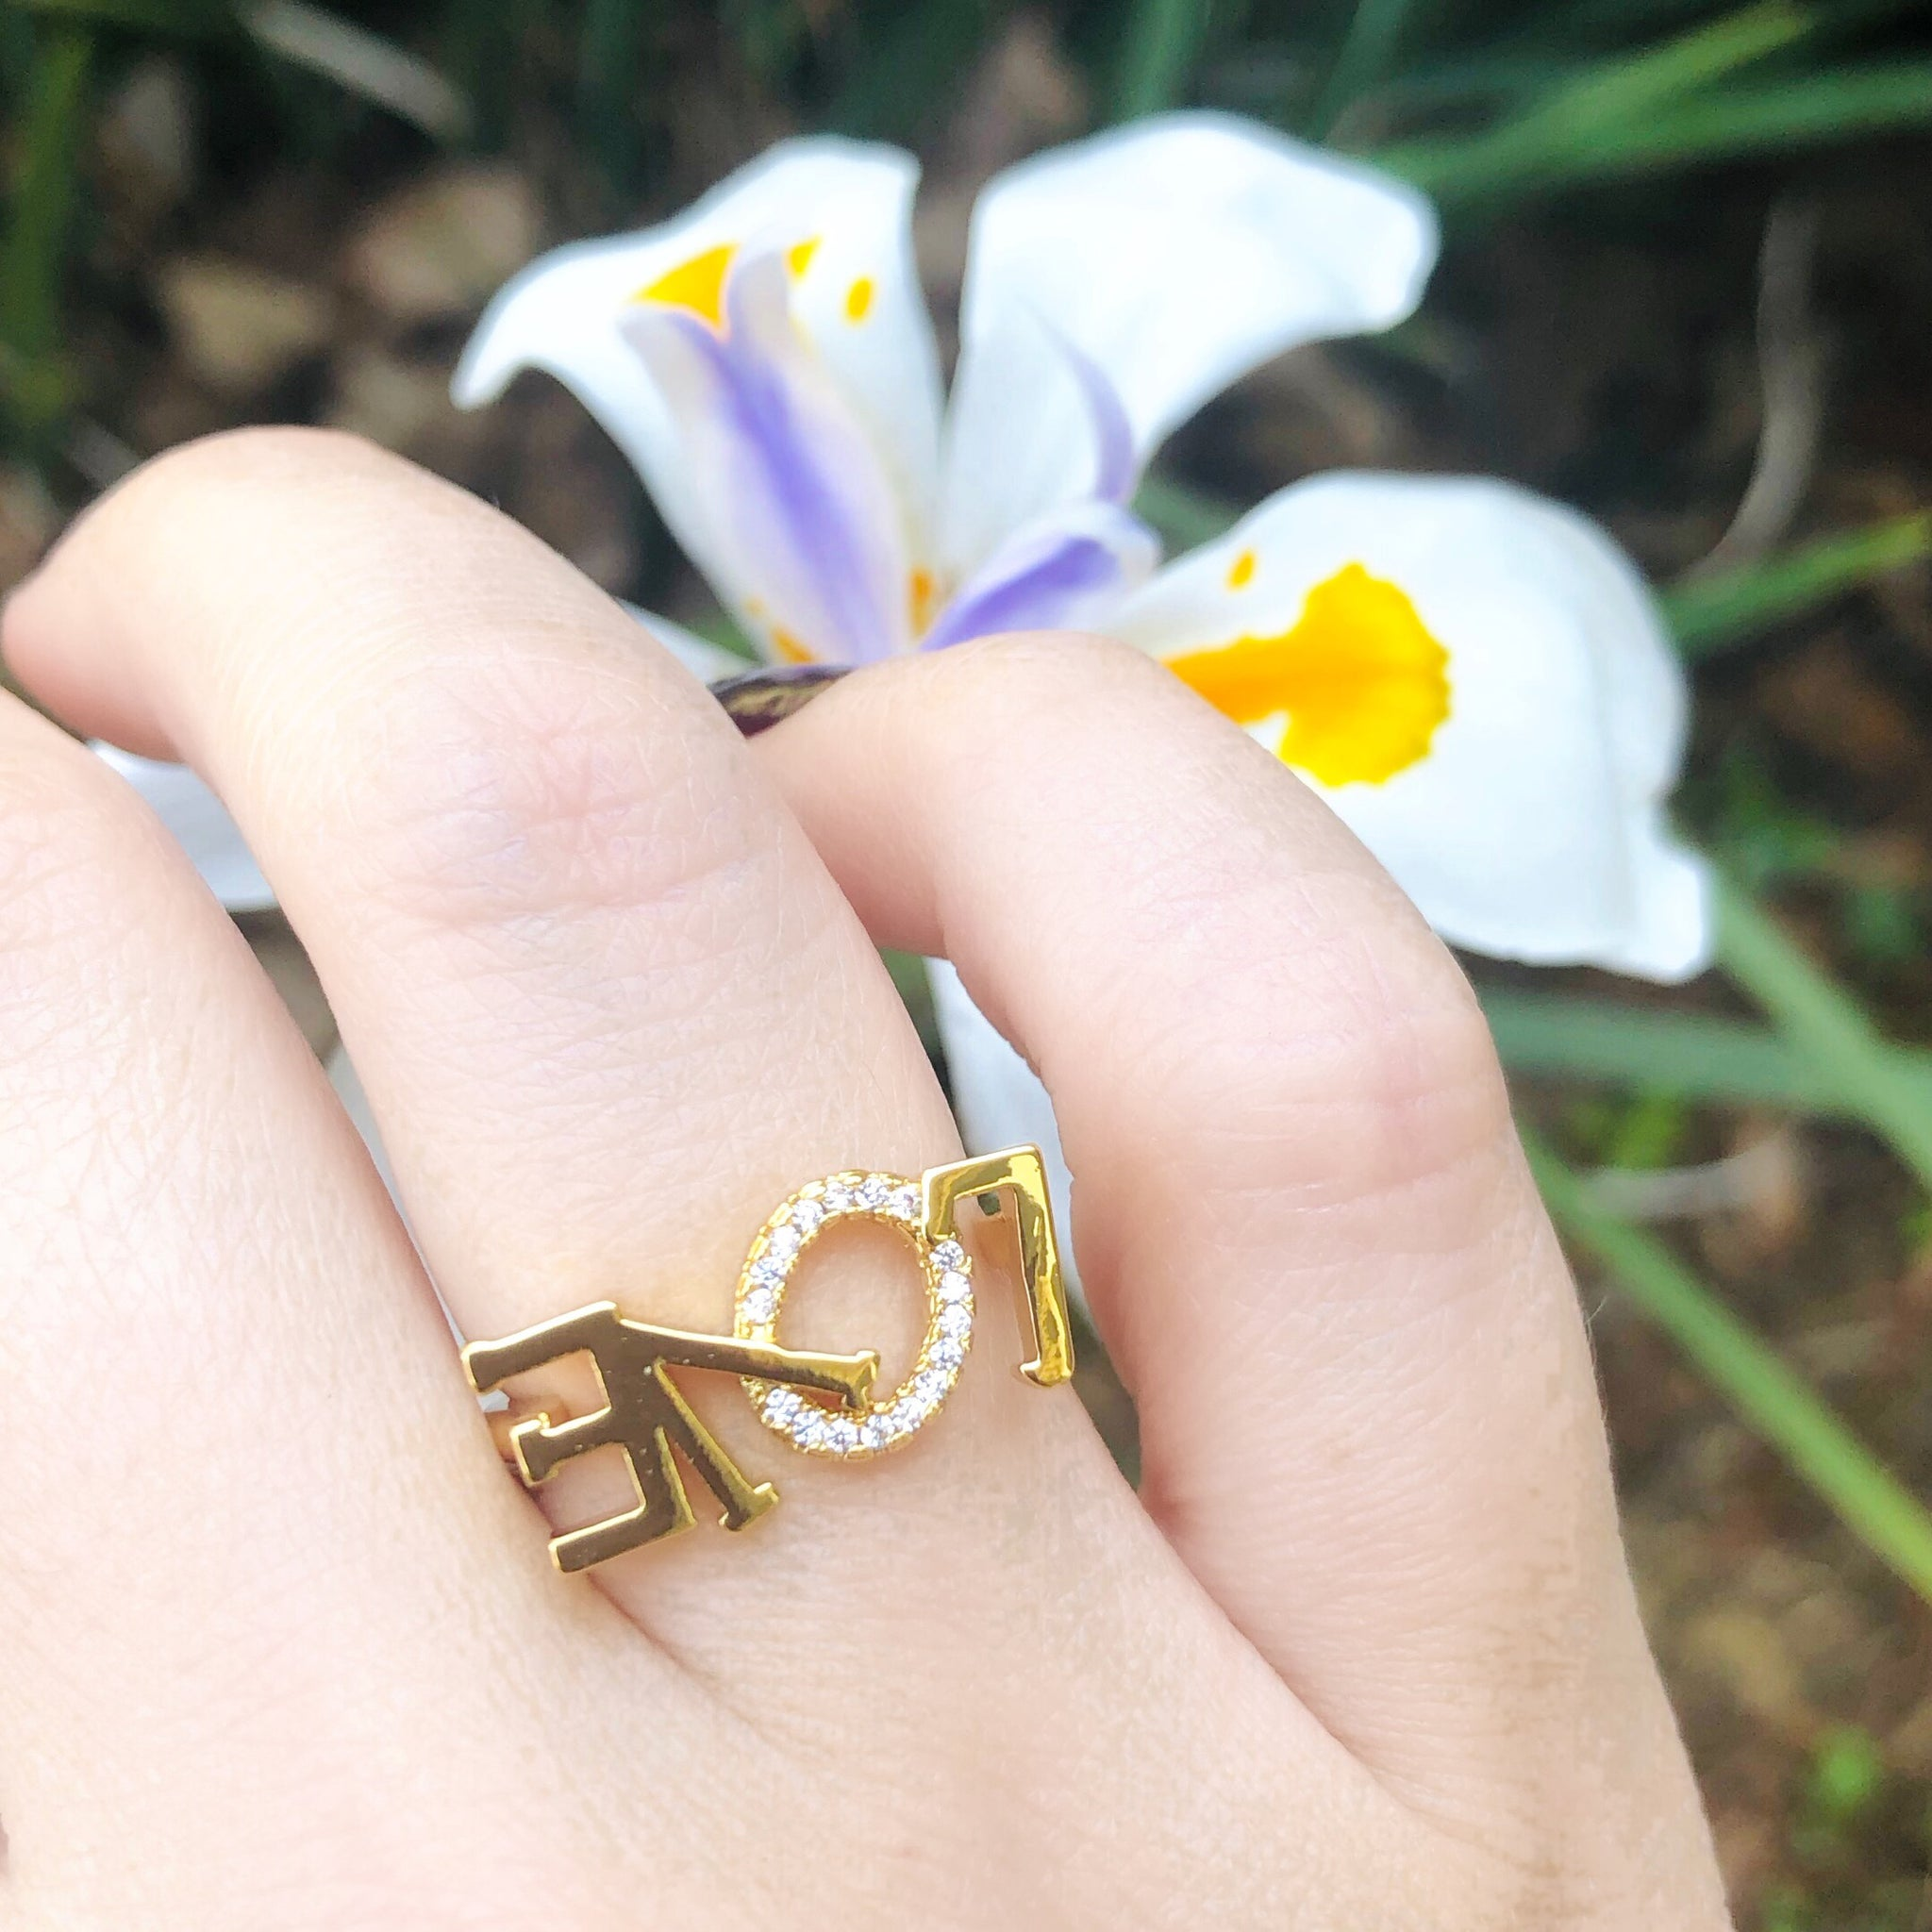 STUDDED LOVE RING | 18K Gold - Unique Brazilian Jewelry (4510824005707)